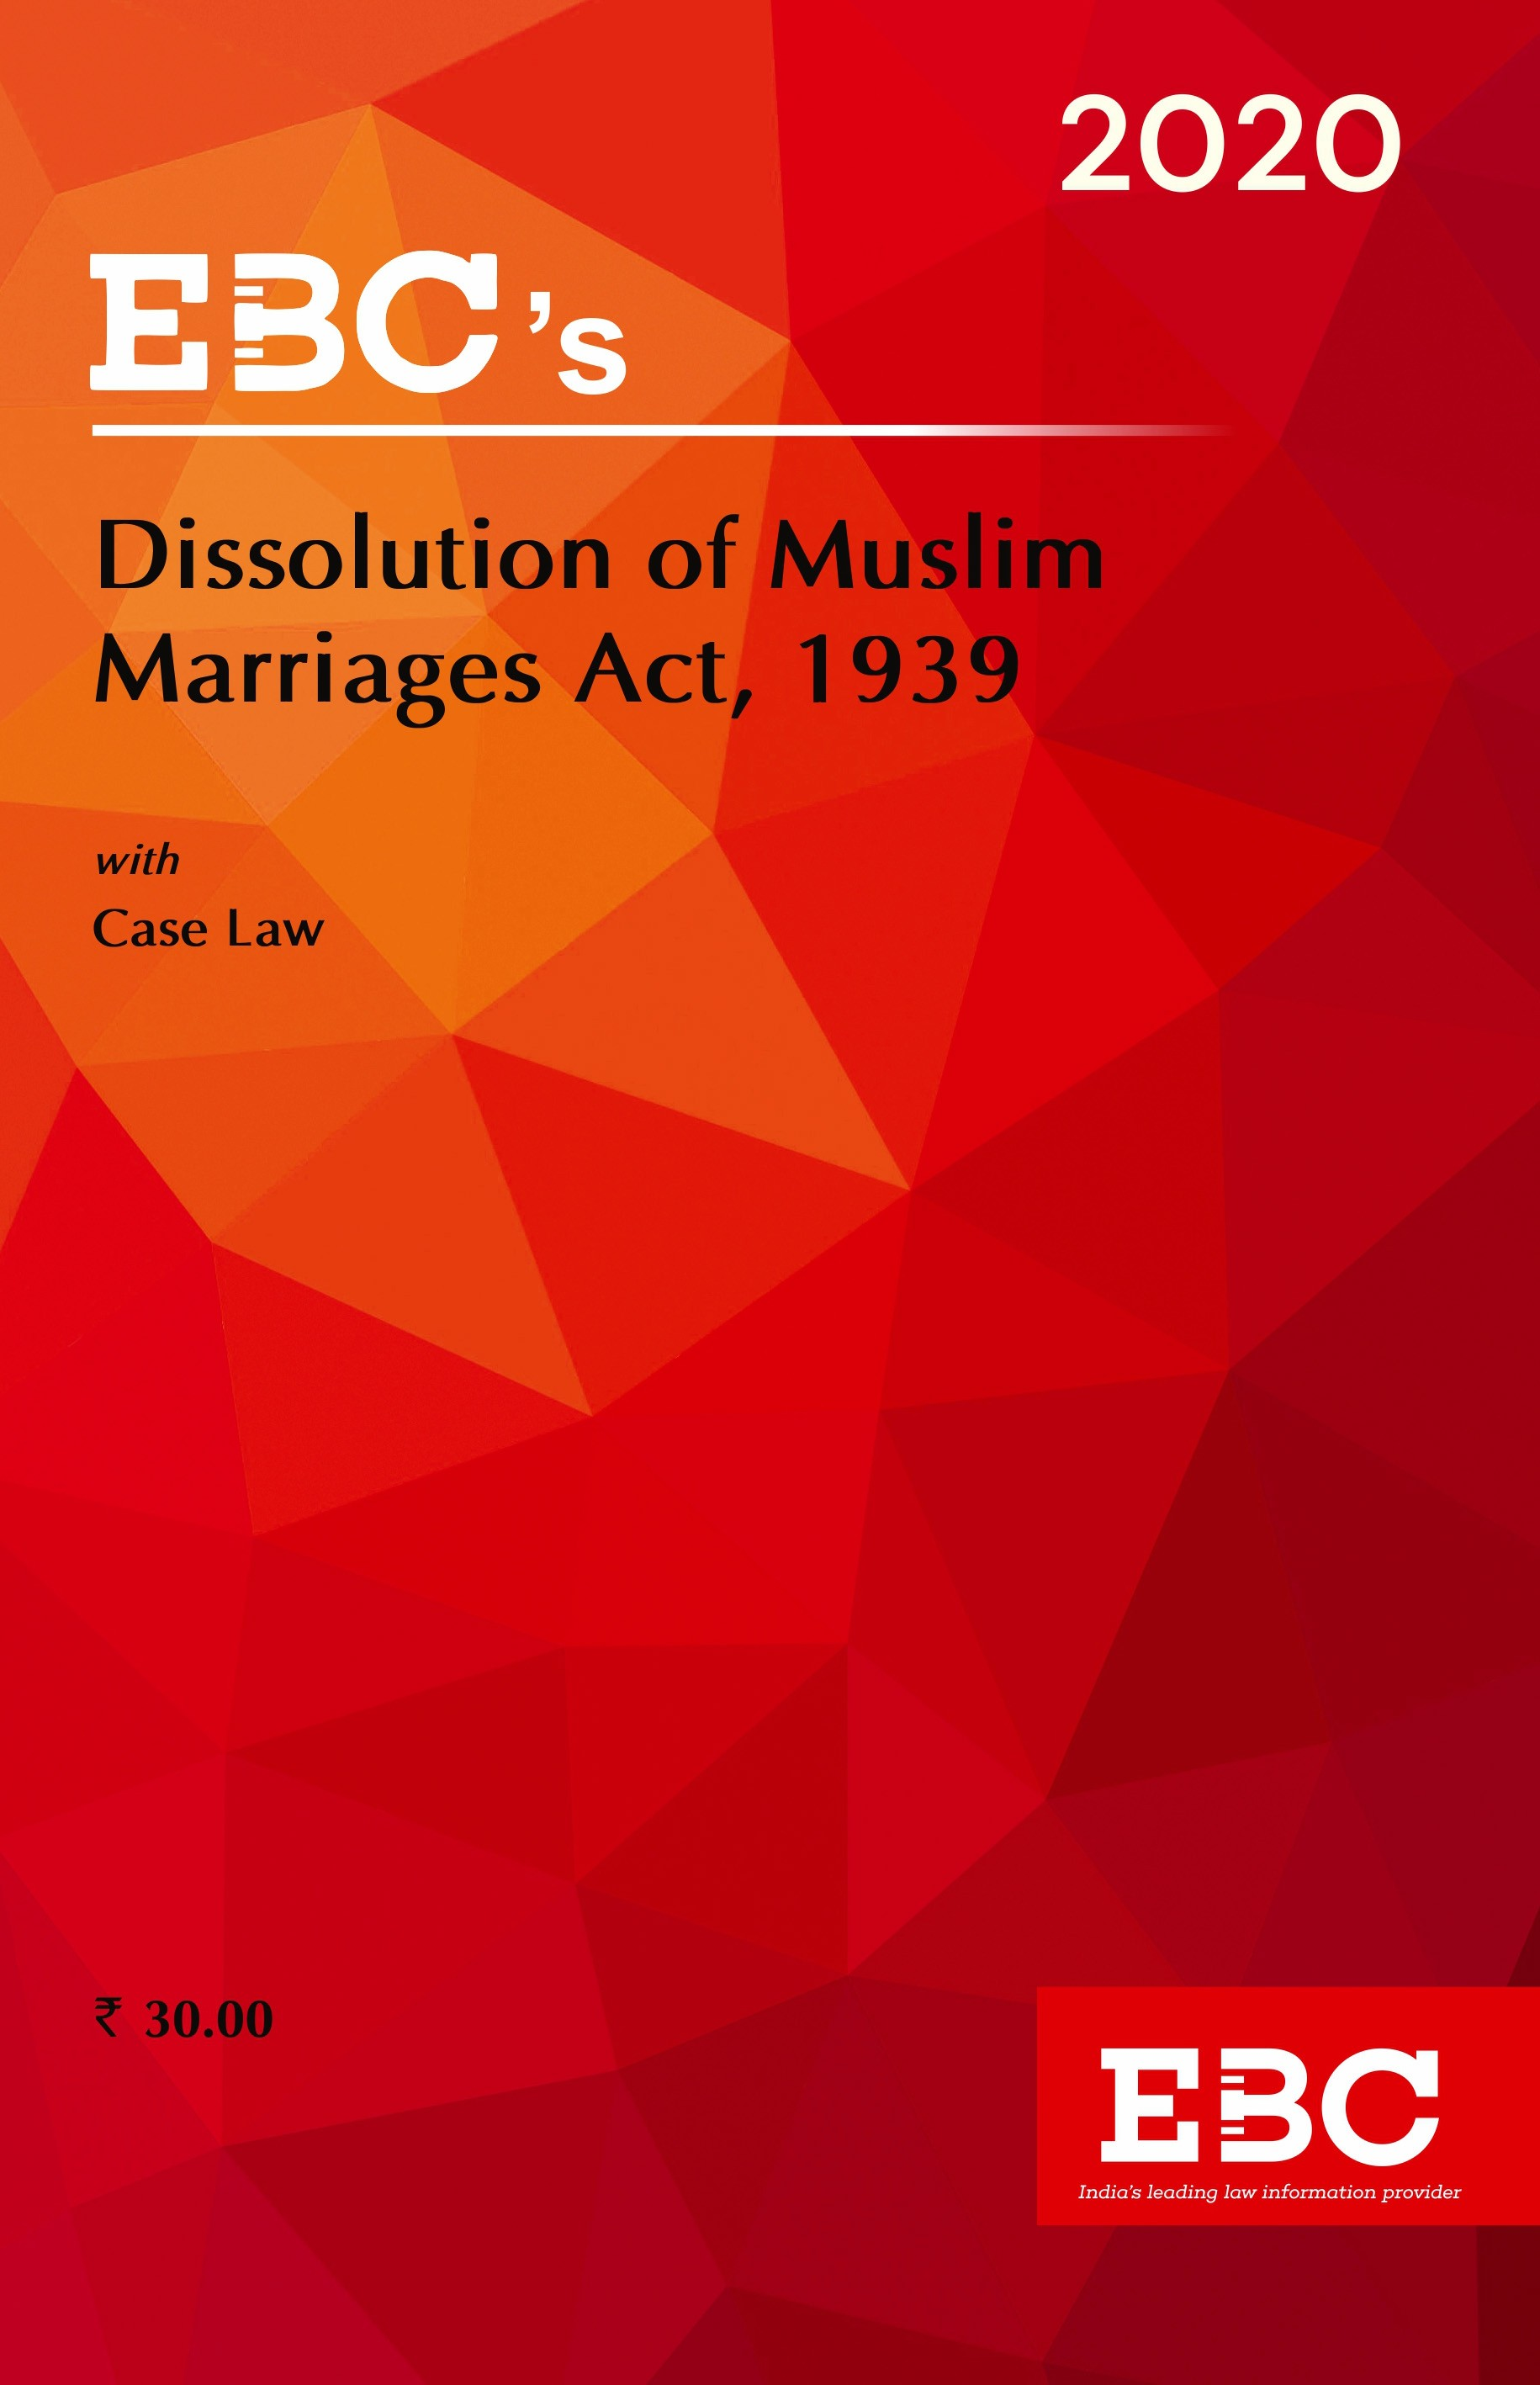 Dissolution of Muslim Marriages Act, 1939